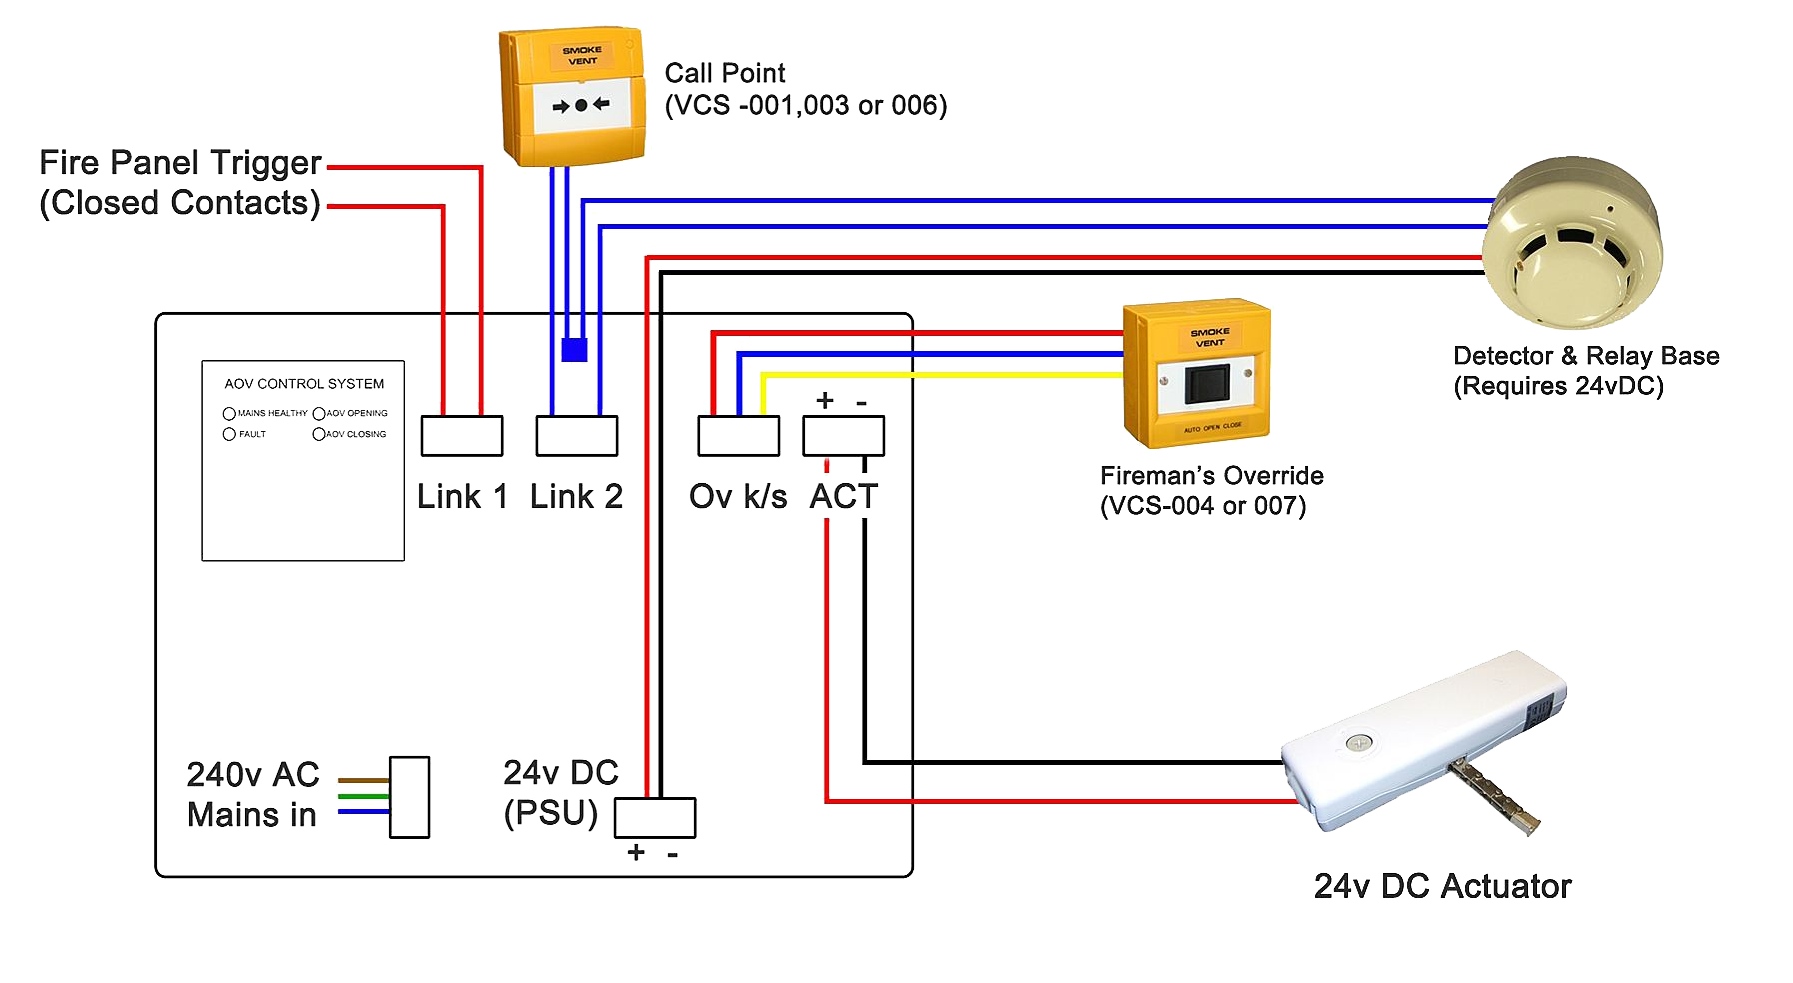 Single Zone AOV Layout Wiring fireman switch wiring diagram raypak pool heater fireman switch intermatic k4221c wiring diagram at panicattacktreatment.co